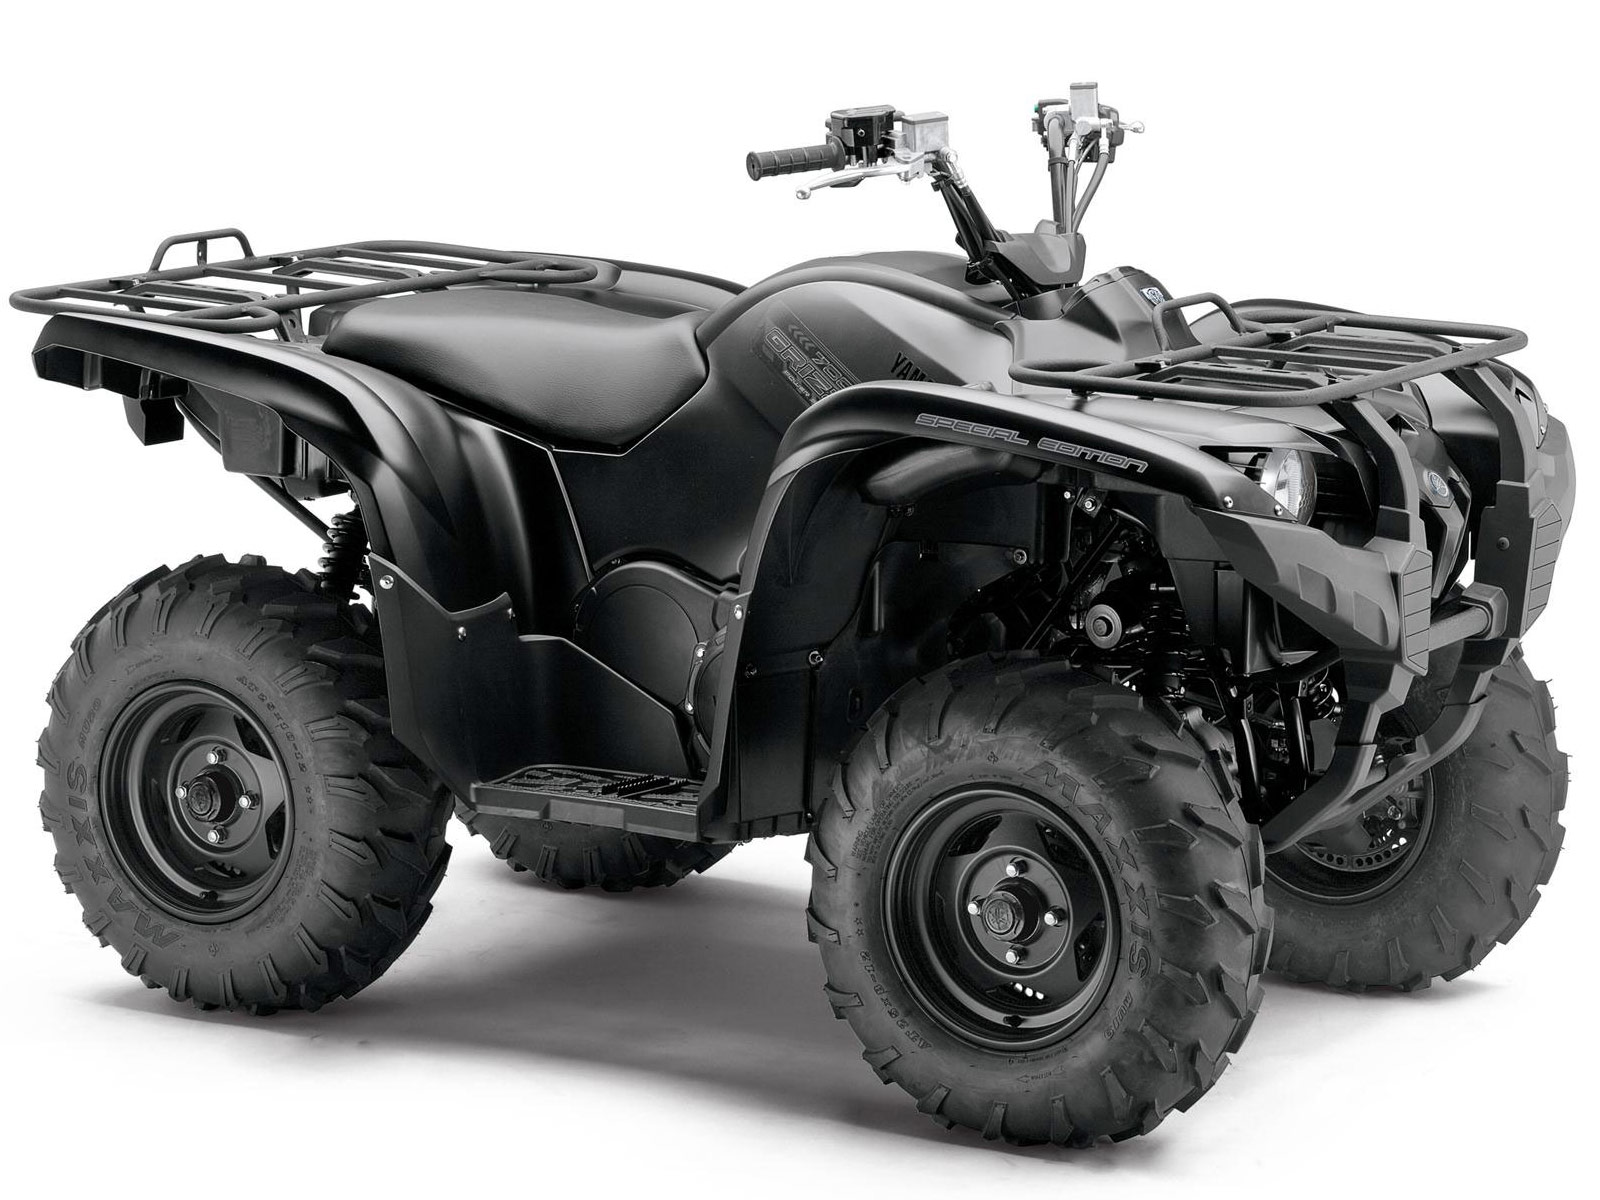 2013 yamaha grizzly 700 fi auto 4x4 eps se review photos